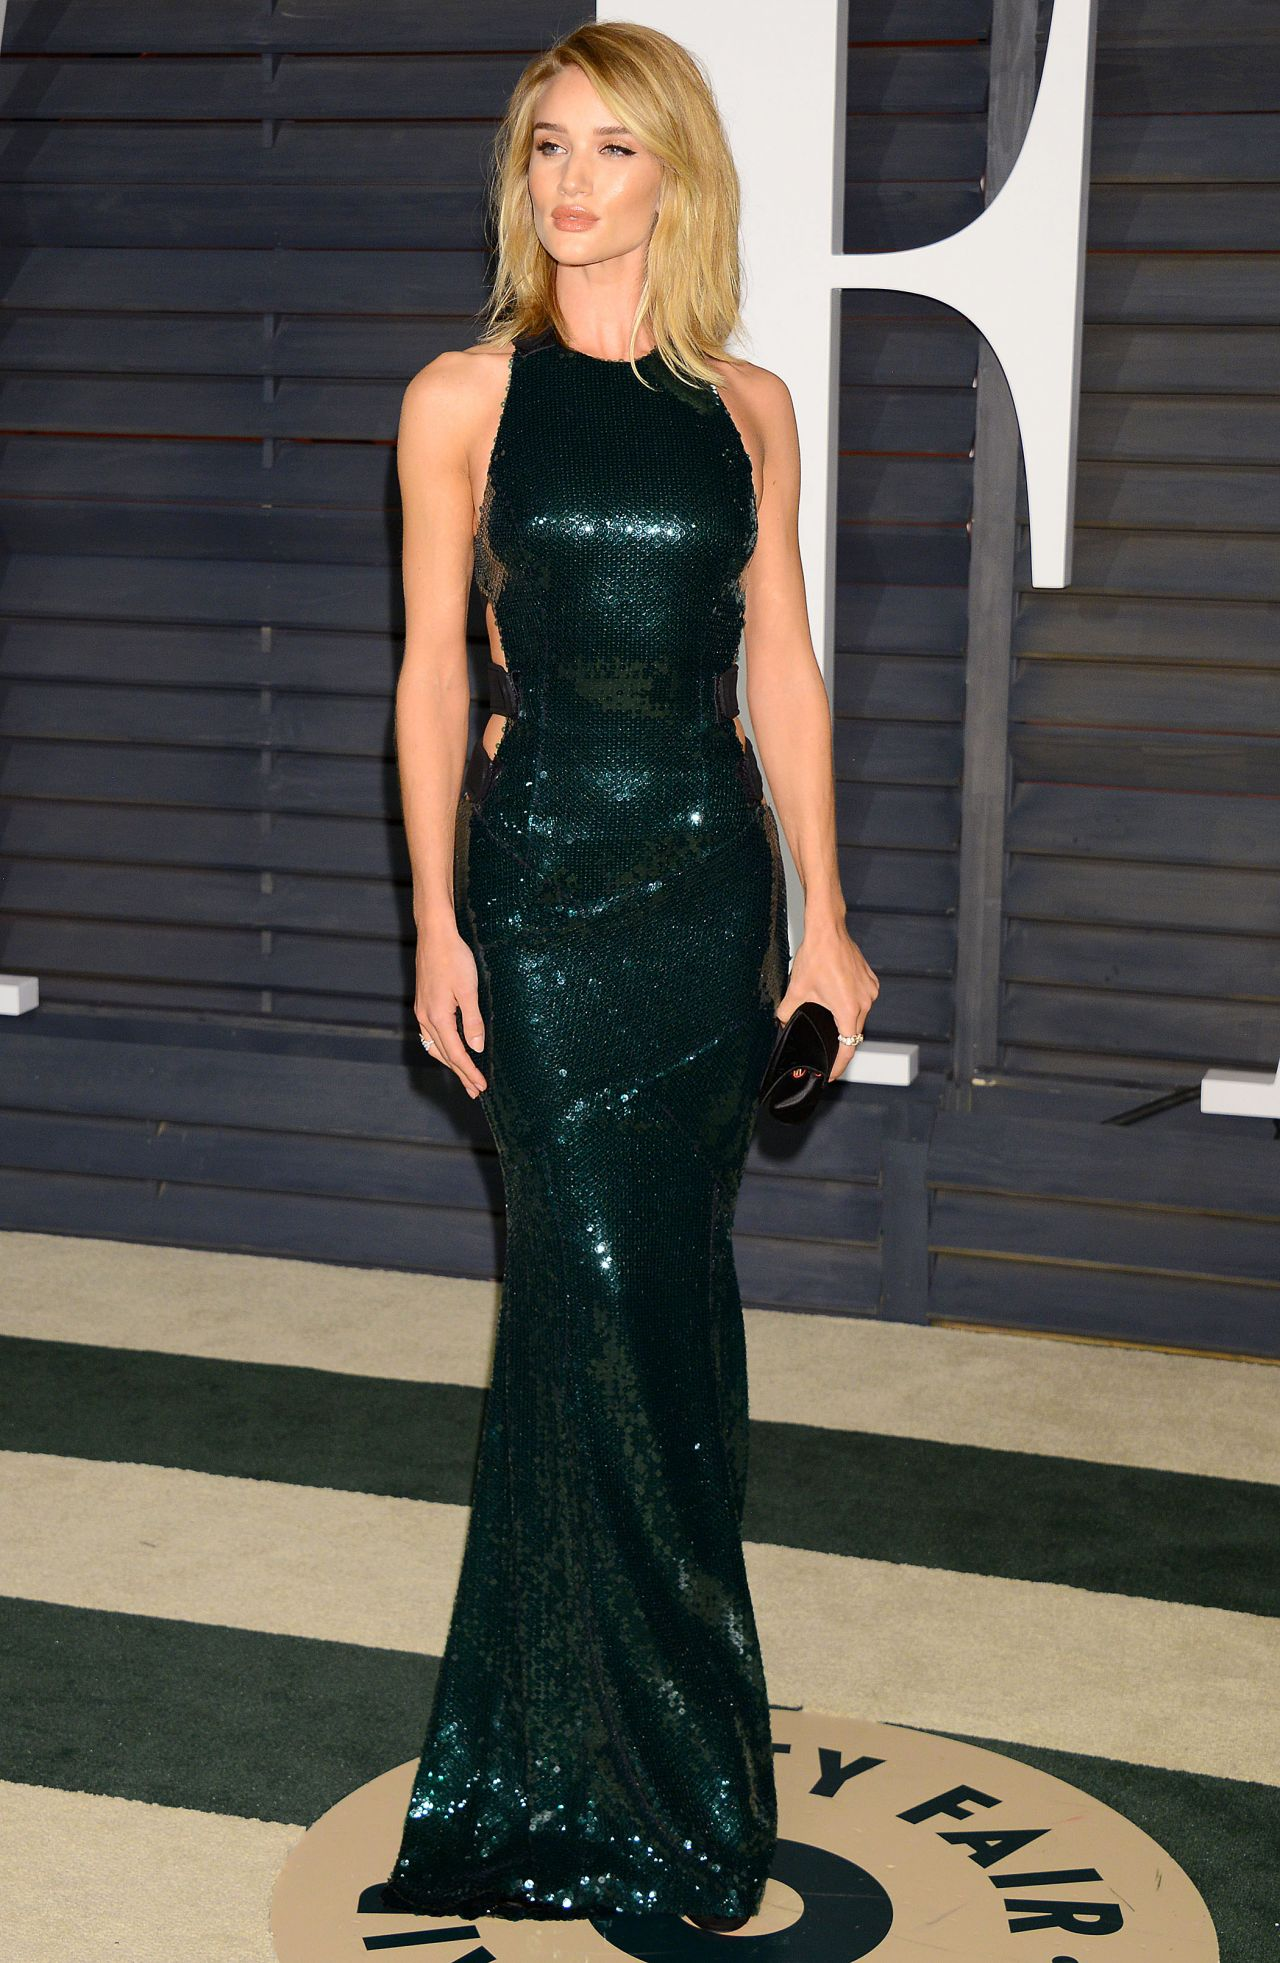 Rosie Huntington-Whiteley wearing Atelier Versace | About Her